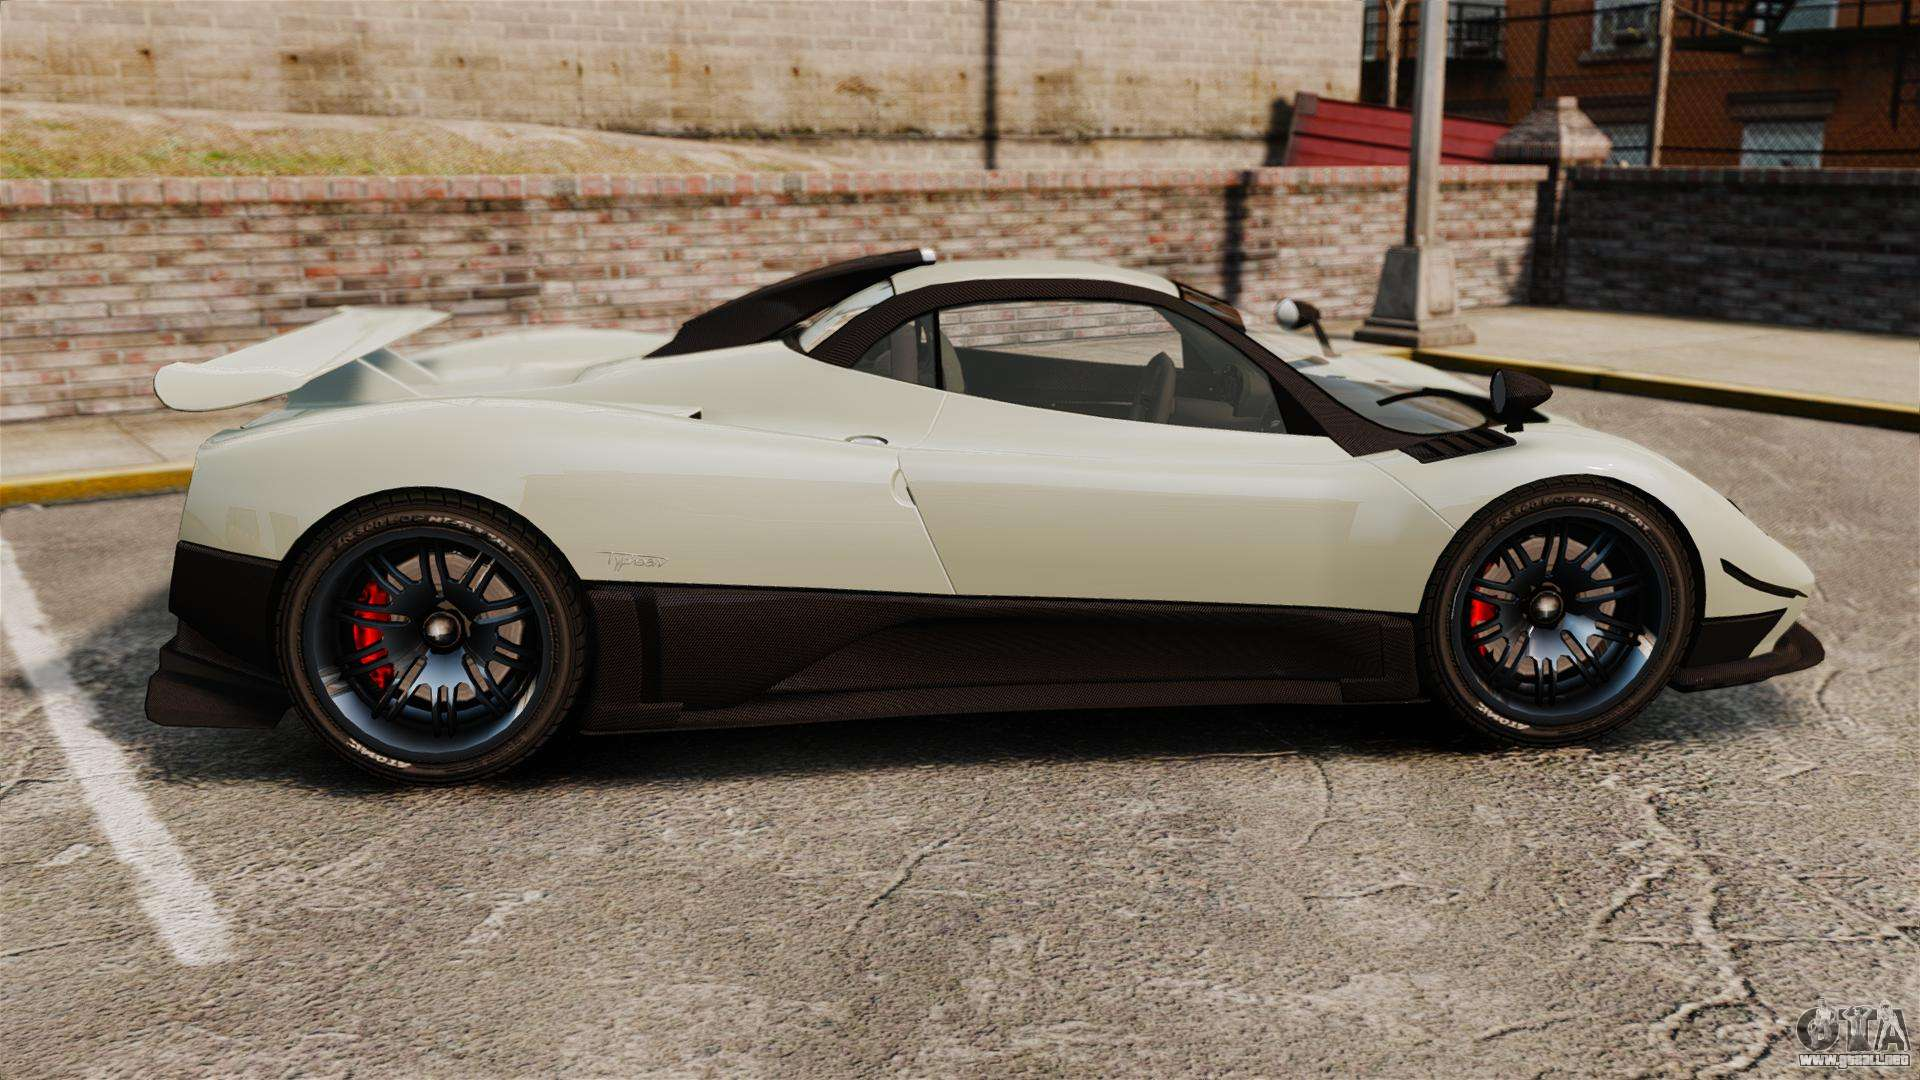 gta 5 new car releaseA brand new super car for GTA 5 in coming Its been a while